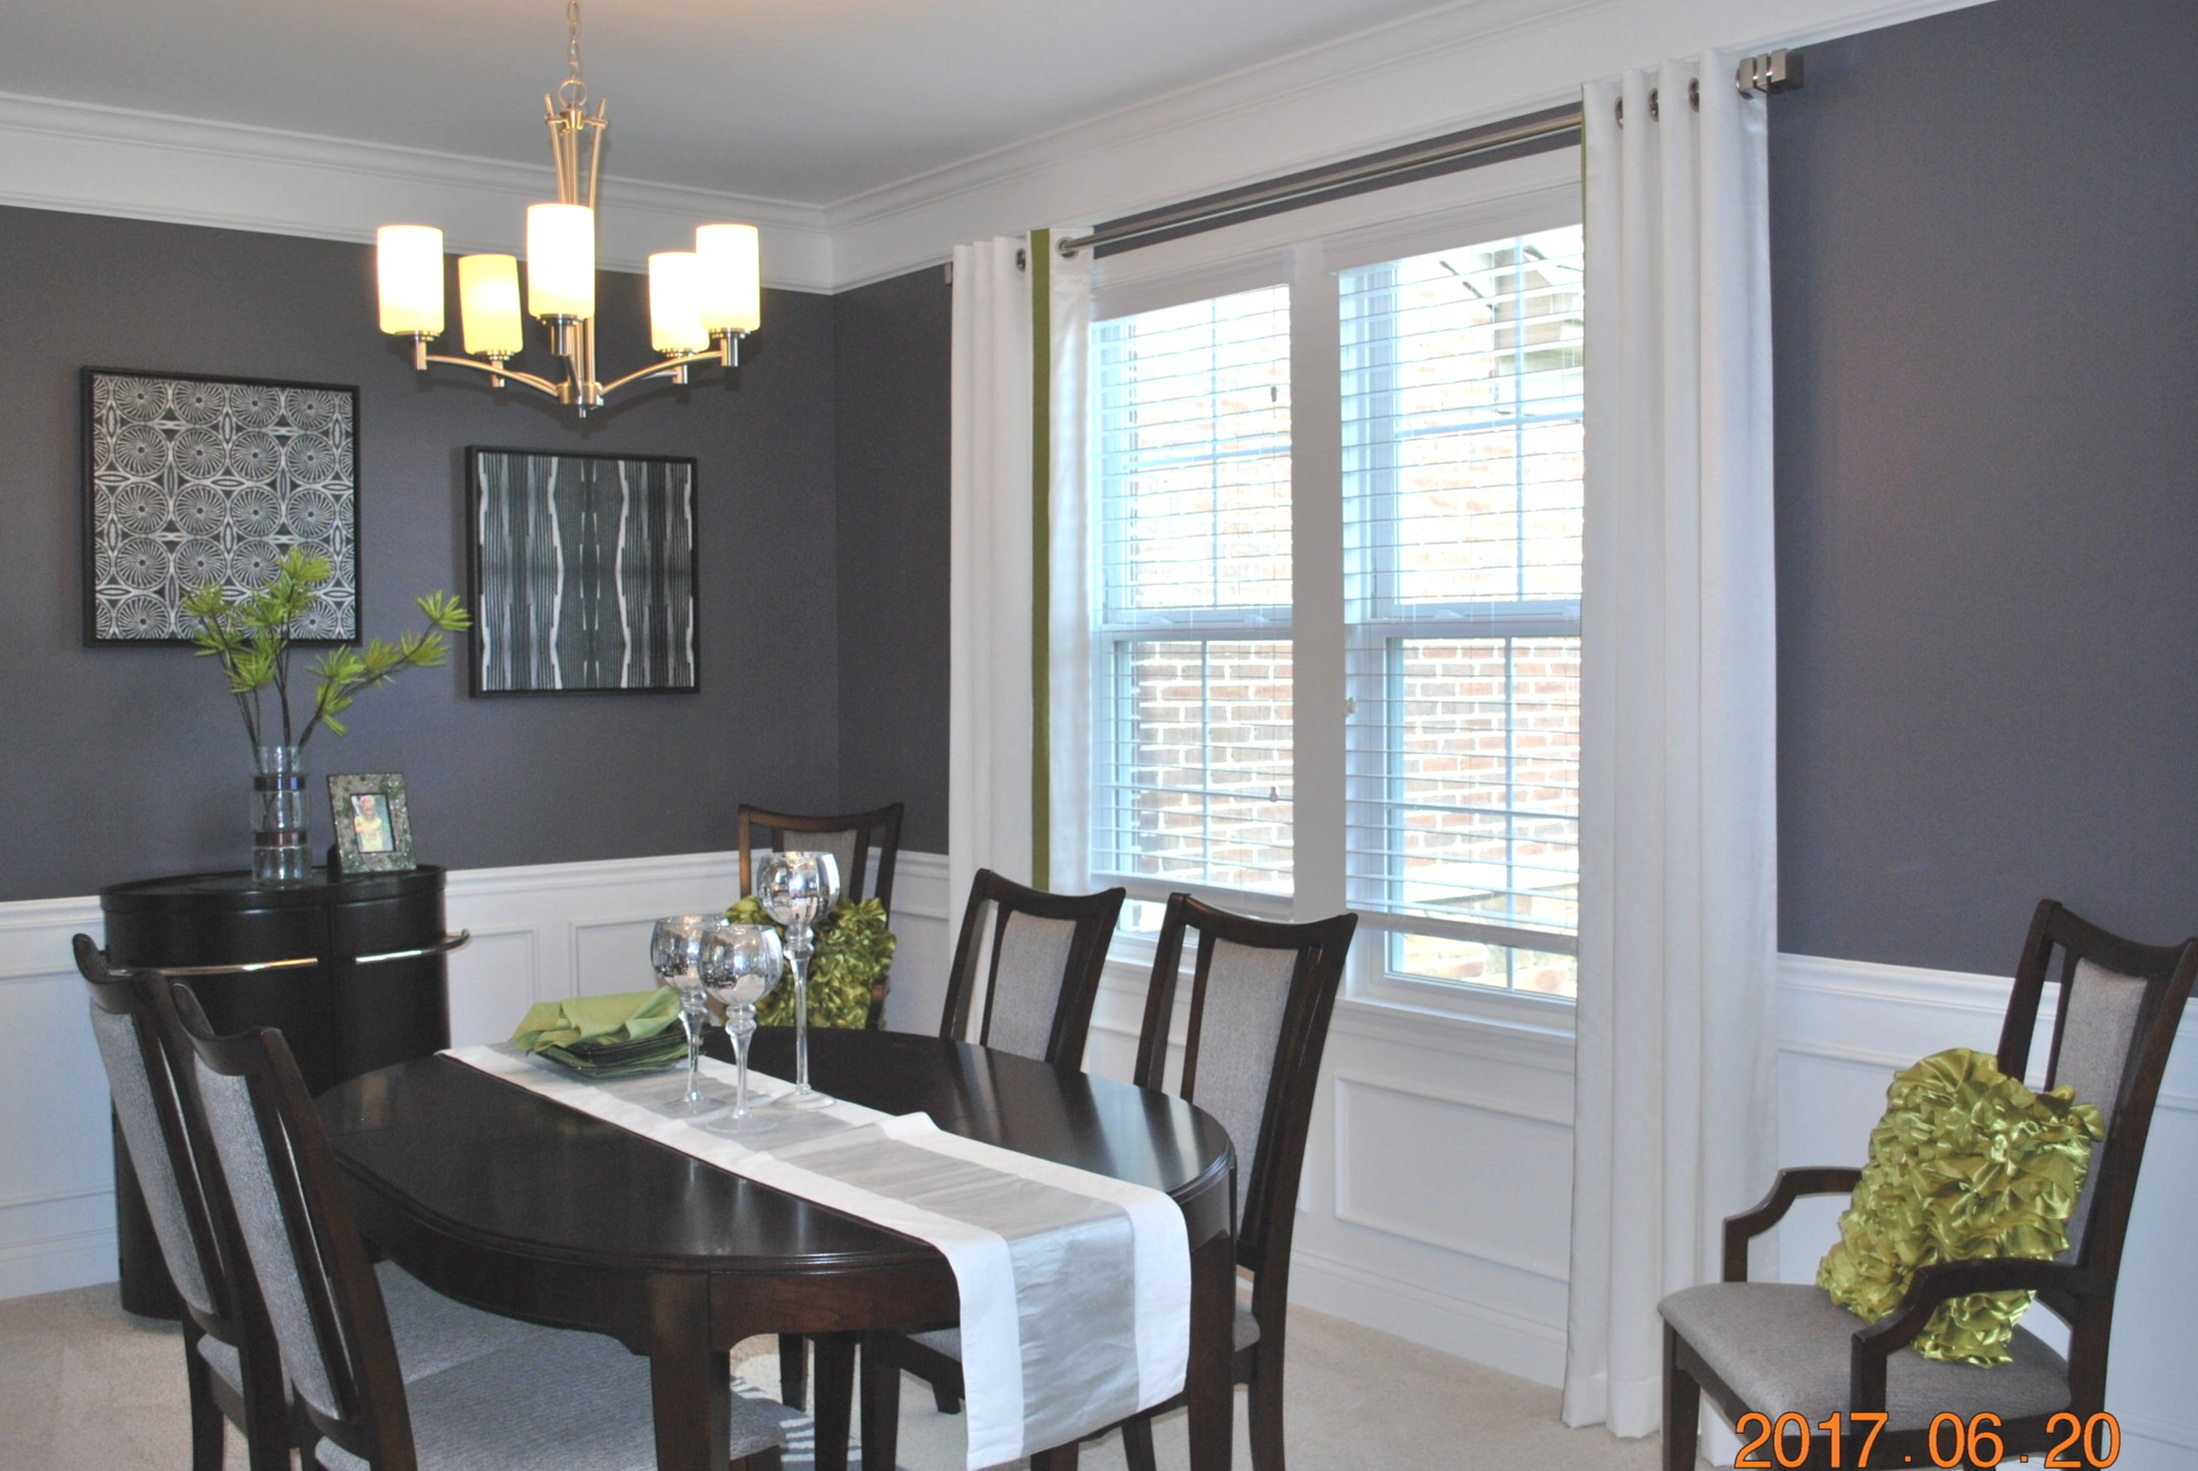 Light painted dining room with wooden chairs and table